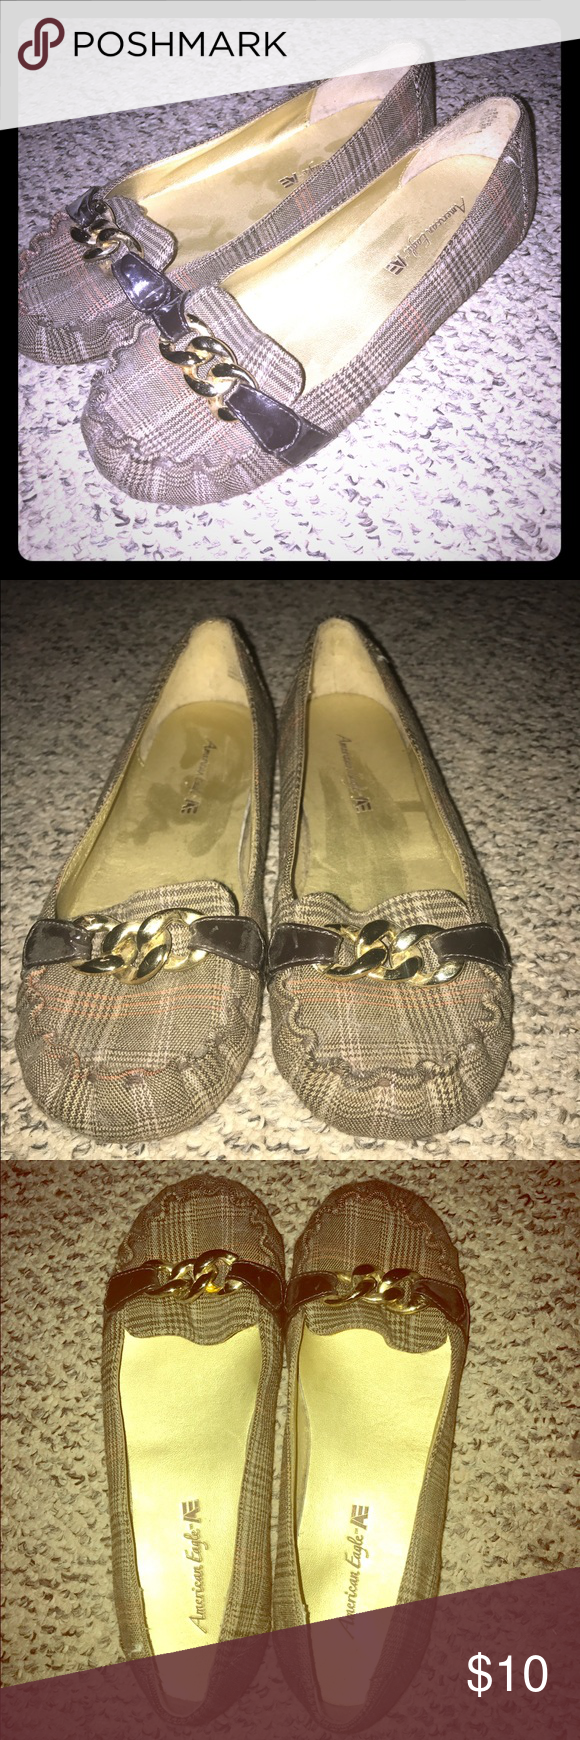 Plaid dress shoe Loafer style, flat dress shoe. Plaid with gold buckle on top. American Eagle by Payless Shoes Flats & Loafers